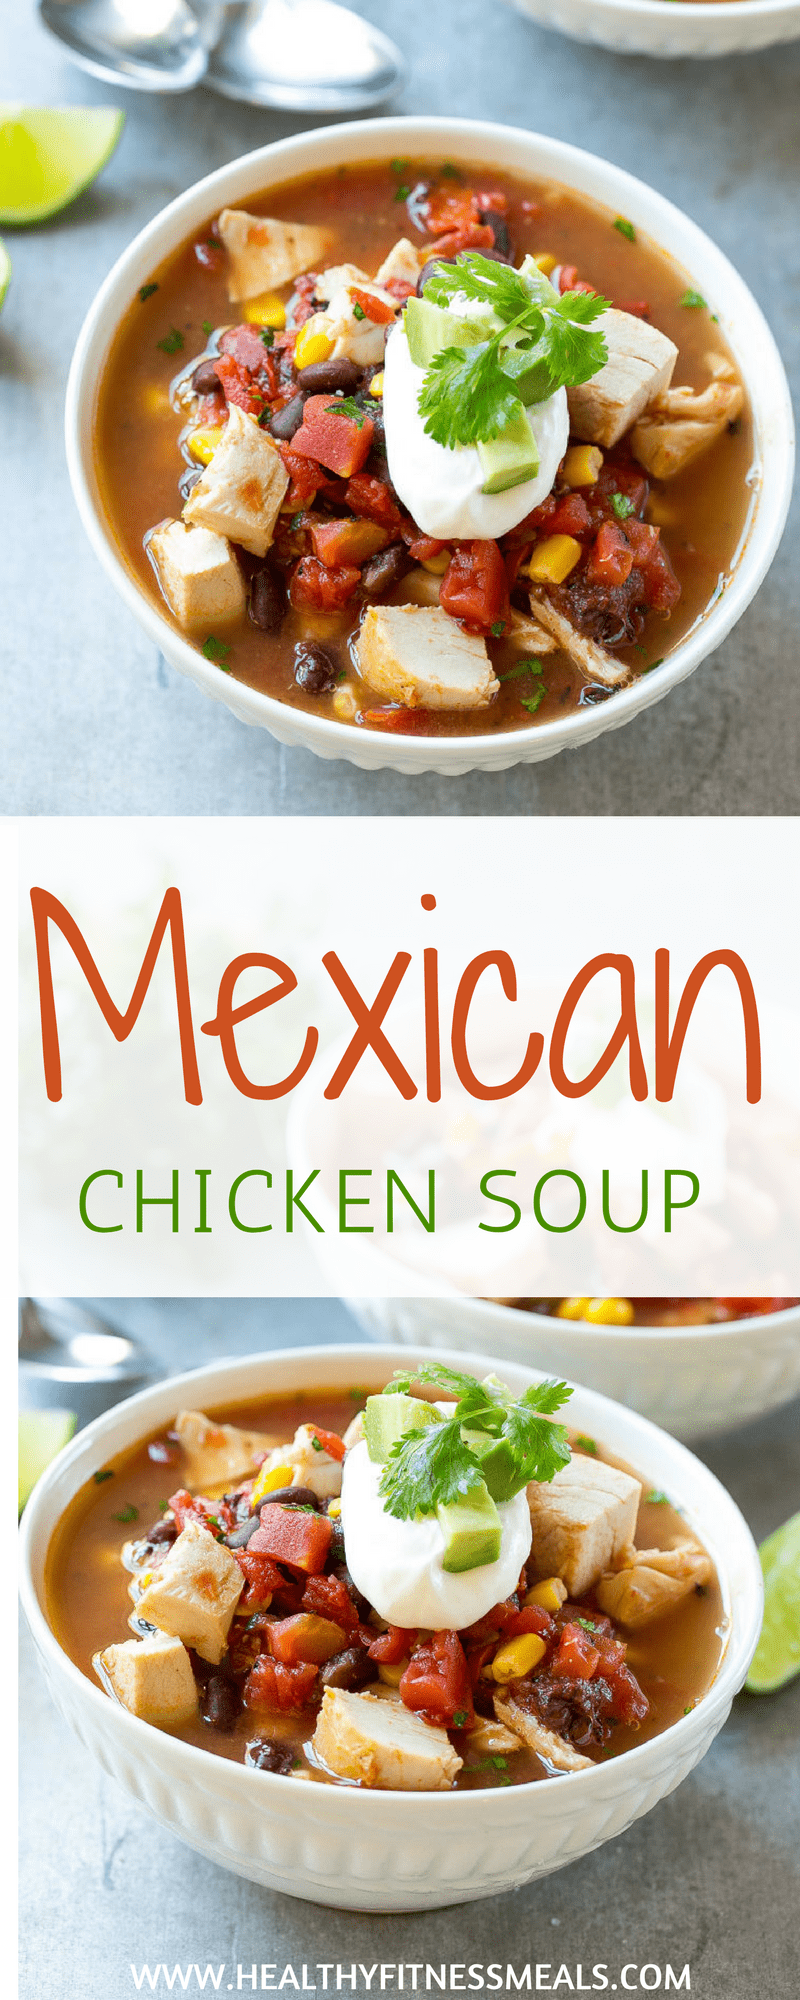 Mexican Chicken Soup | Mexican Soup Recipe | Healthy Soup Recipe | Meican Chicken Recipe | Healthy Mexican Recipe | Healthy Fitness Meals #mexicansoup #souprecipe #healthysouprecipe #healthyrecipe